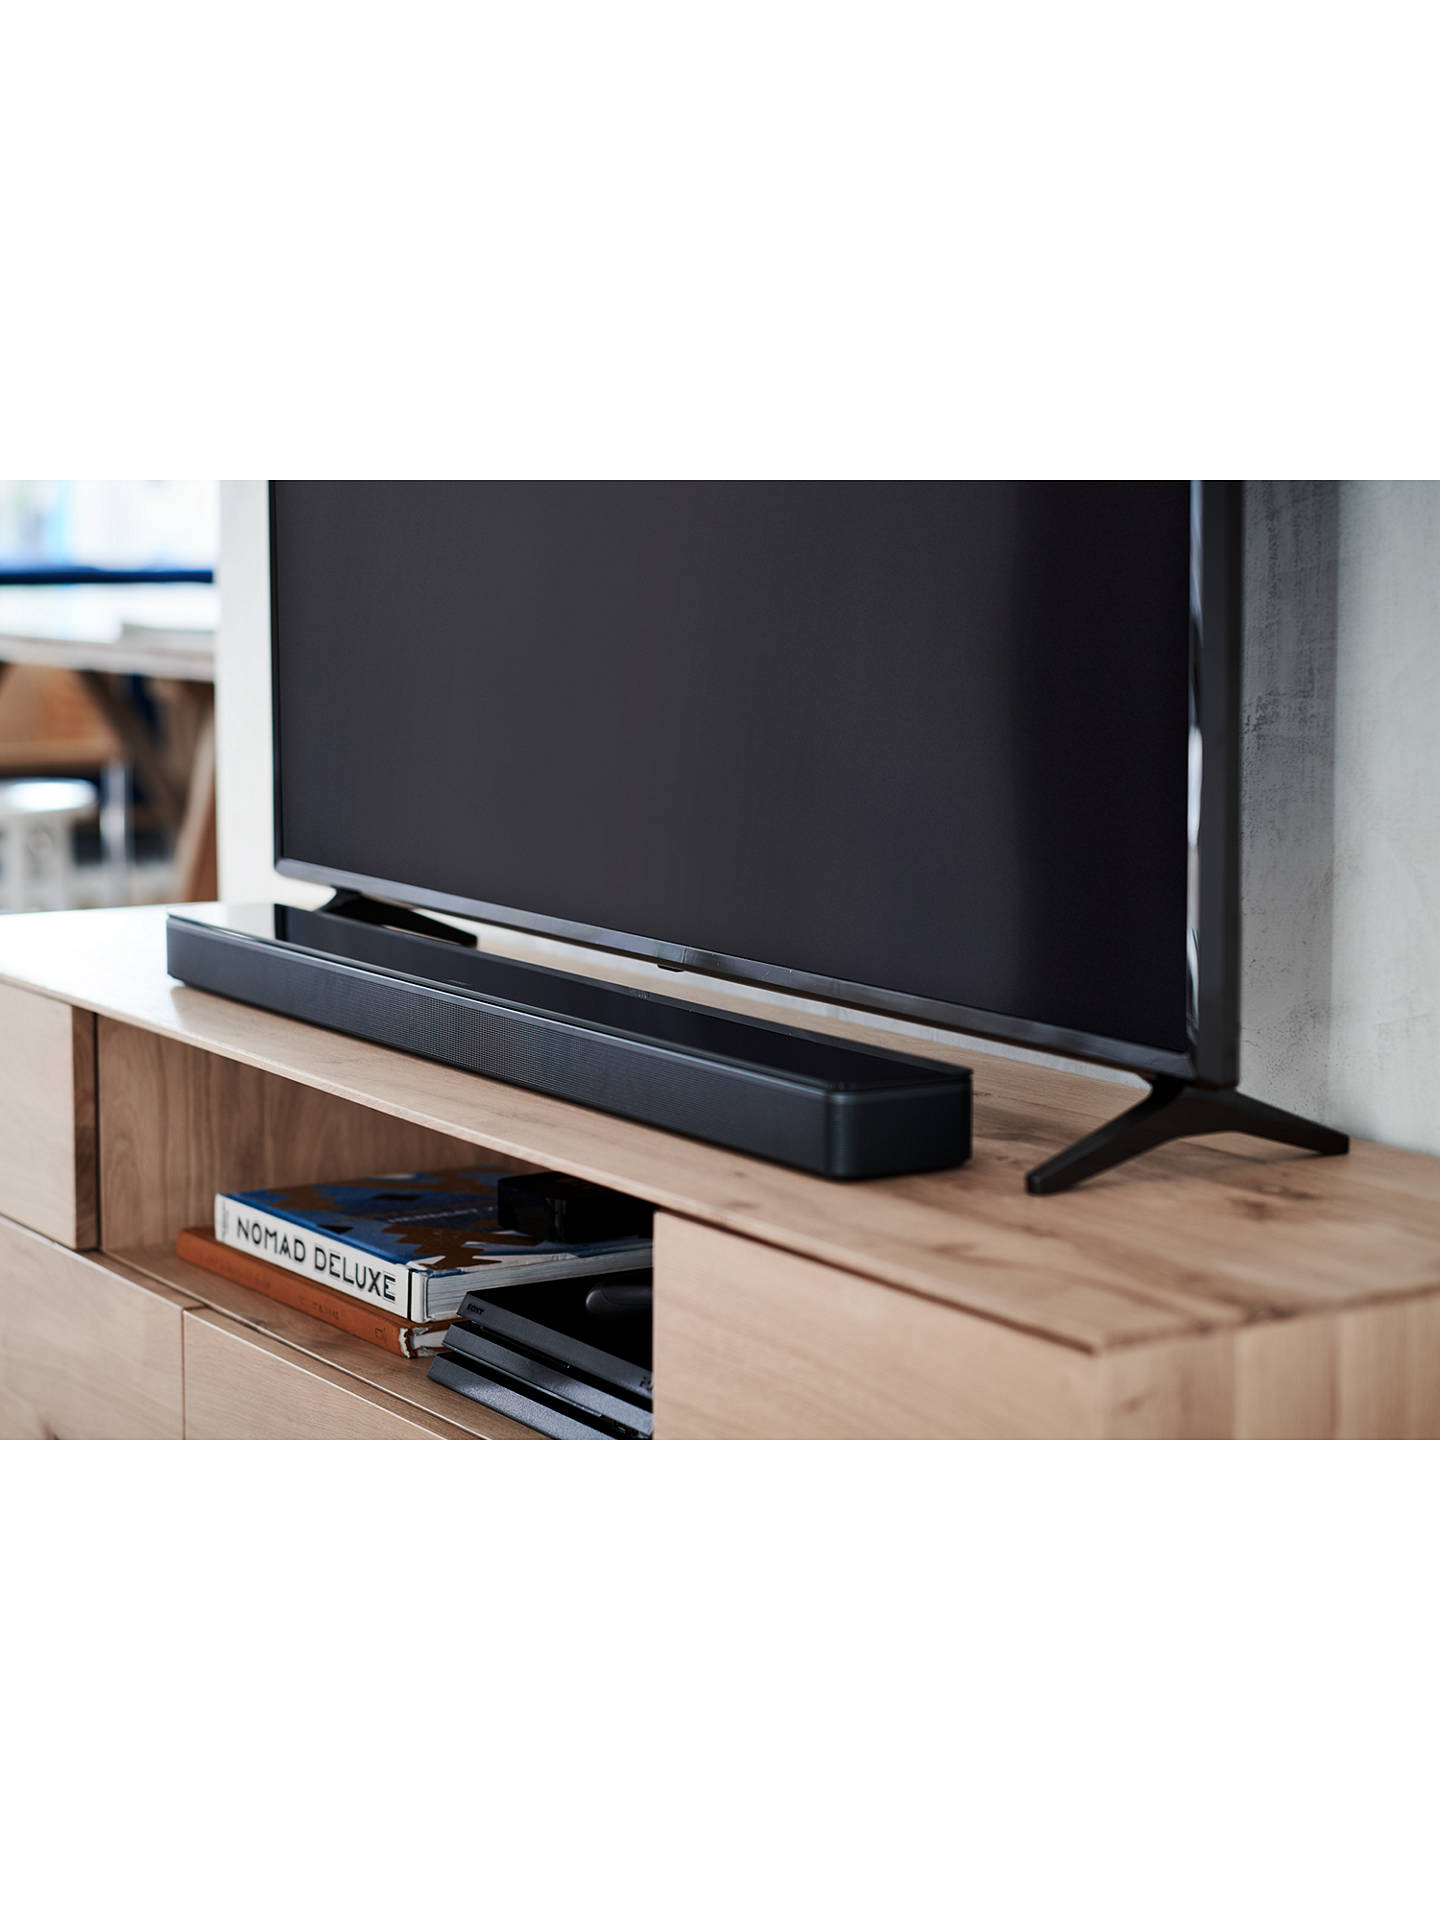 BuyBose® Sound Bar 700 with Wi-Fi, Bluetooth & Alexa Voice Recognition and Control, Black Online at johnlewis.com